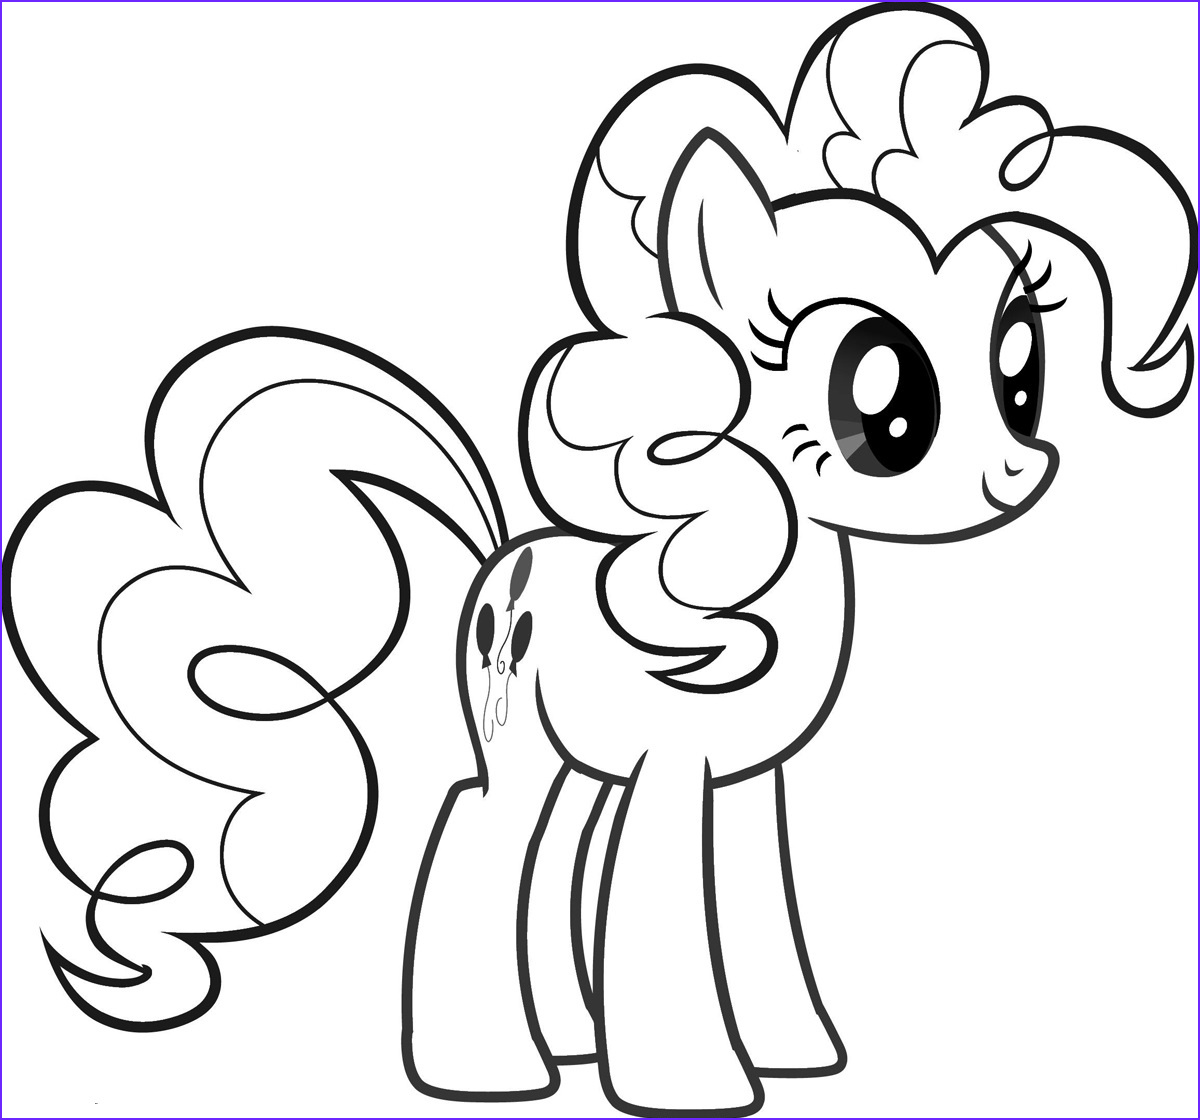 Ponies Coloring Luxury Images Pinkie Pie Pony Coloring Pages for Girls to Print for Free